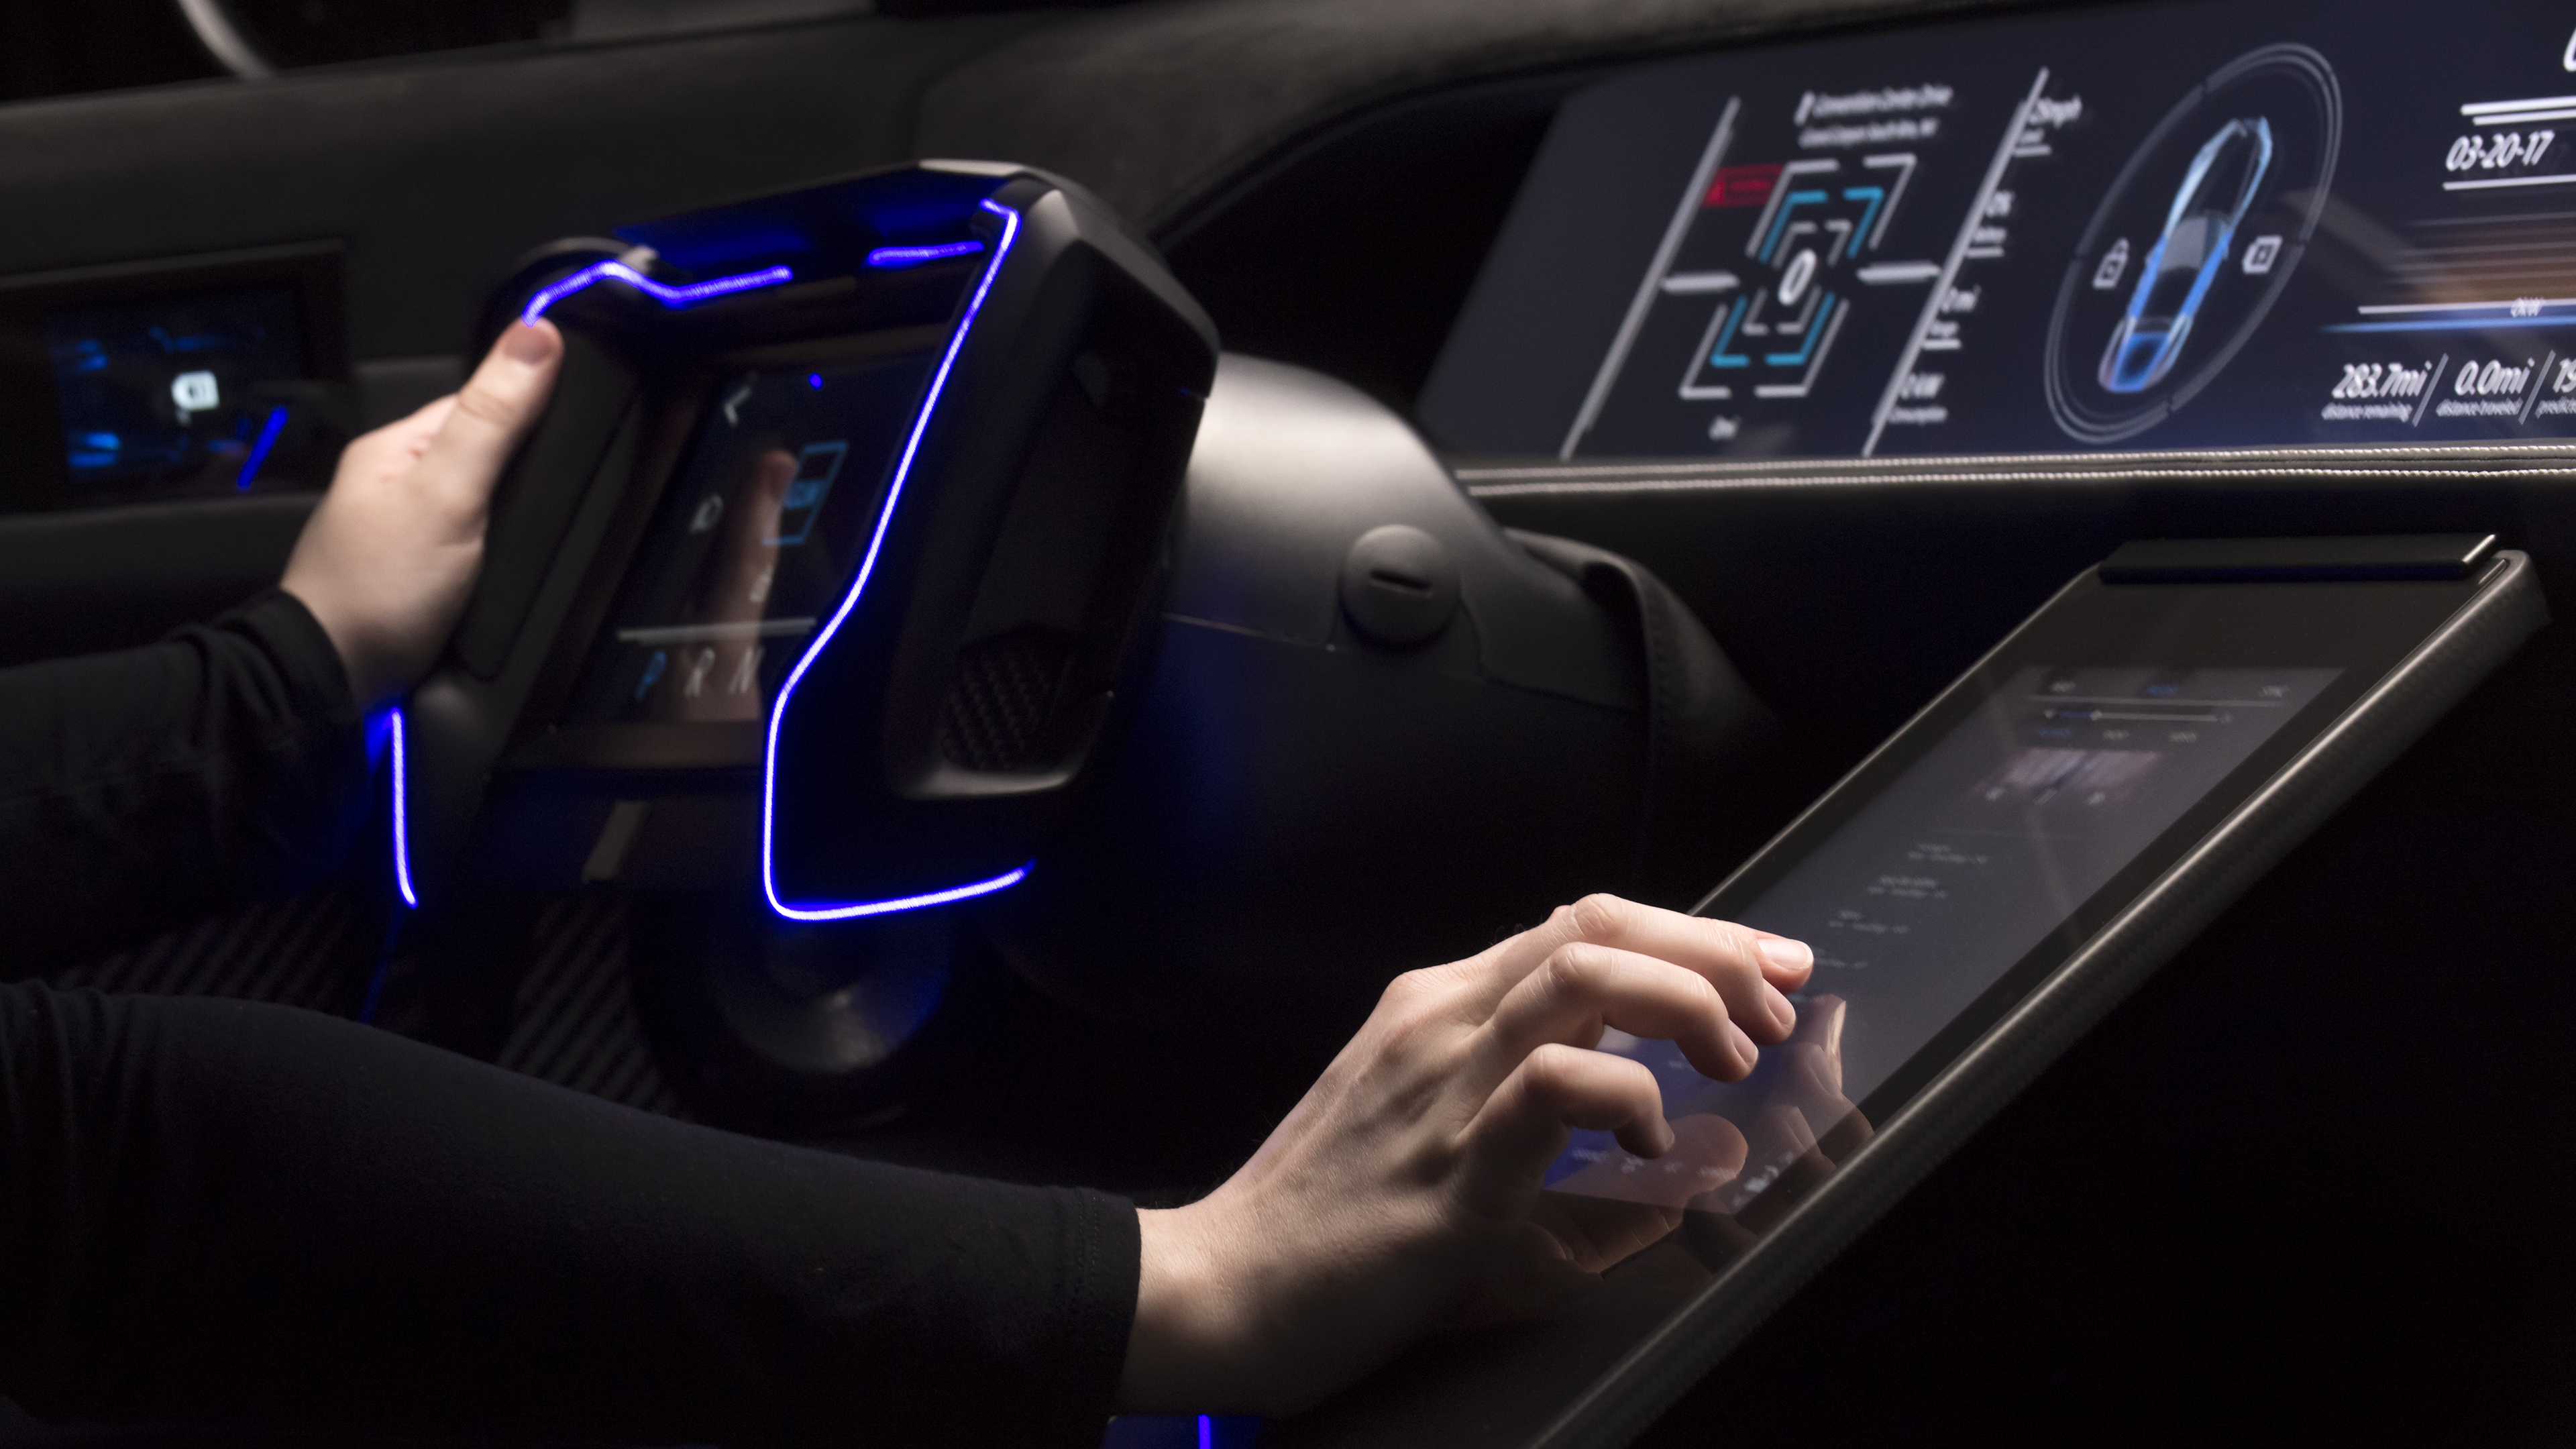 A concept car features a Gorilla Glass interior console.